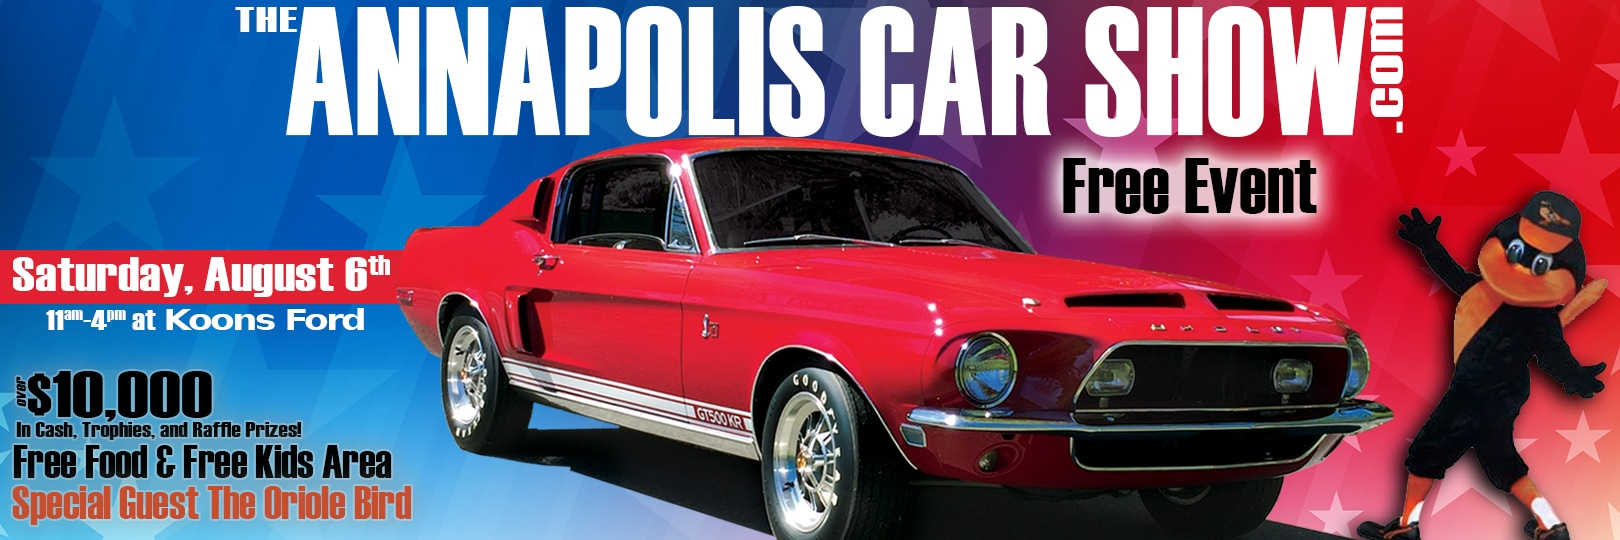 The Annapolis Car Show Hosted By Koons Ford - Koons ford annapolis car show